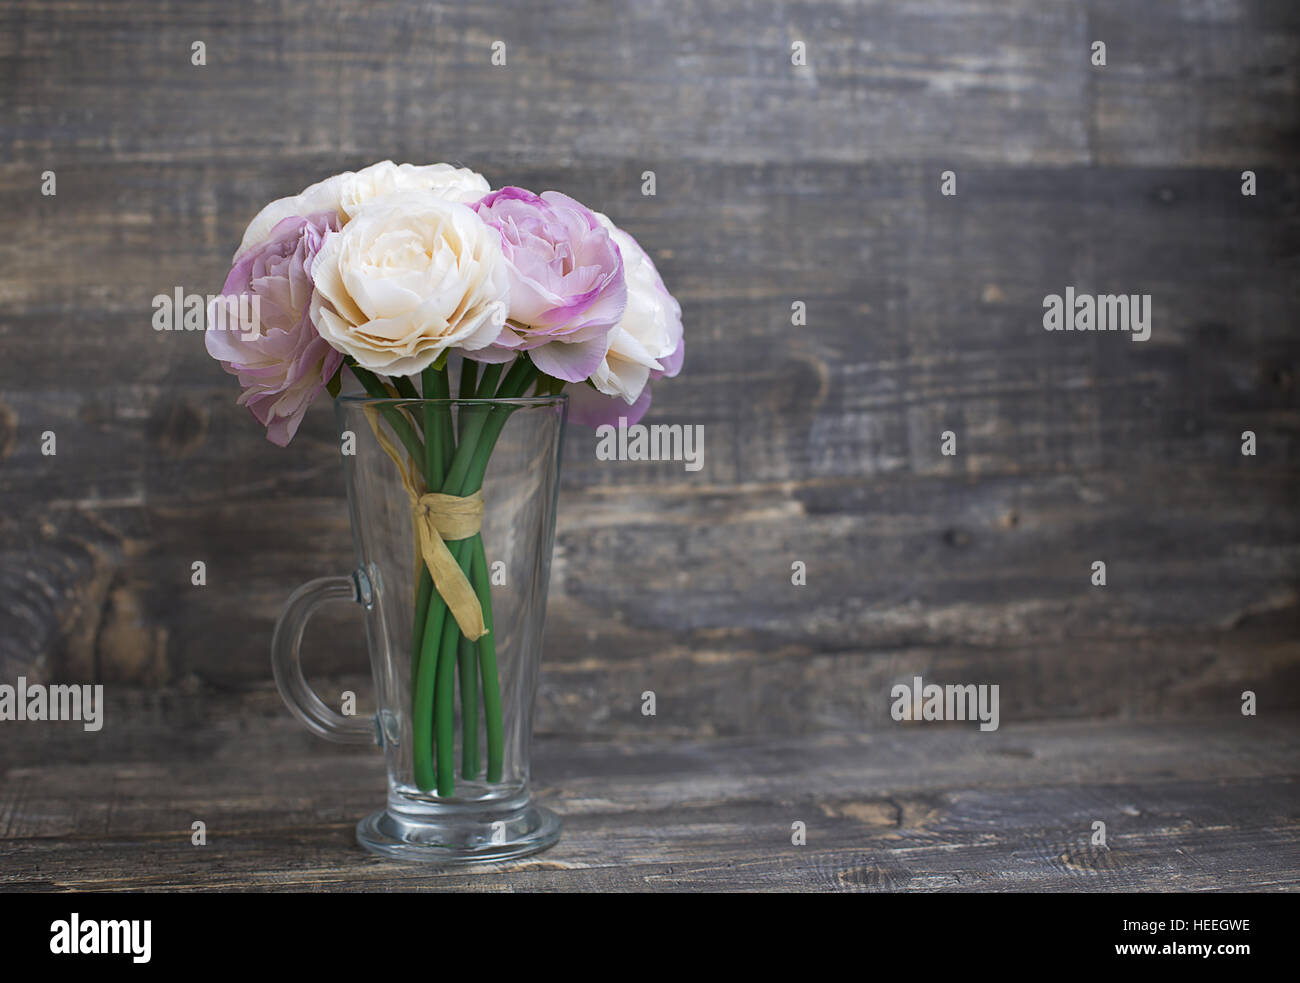 Artificial Flower Bouquet In Vase On Wooden Background Horizontal Stock Photo Alamy